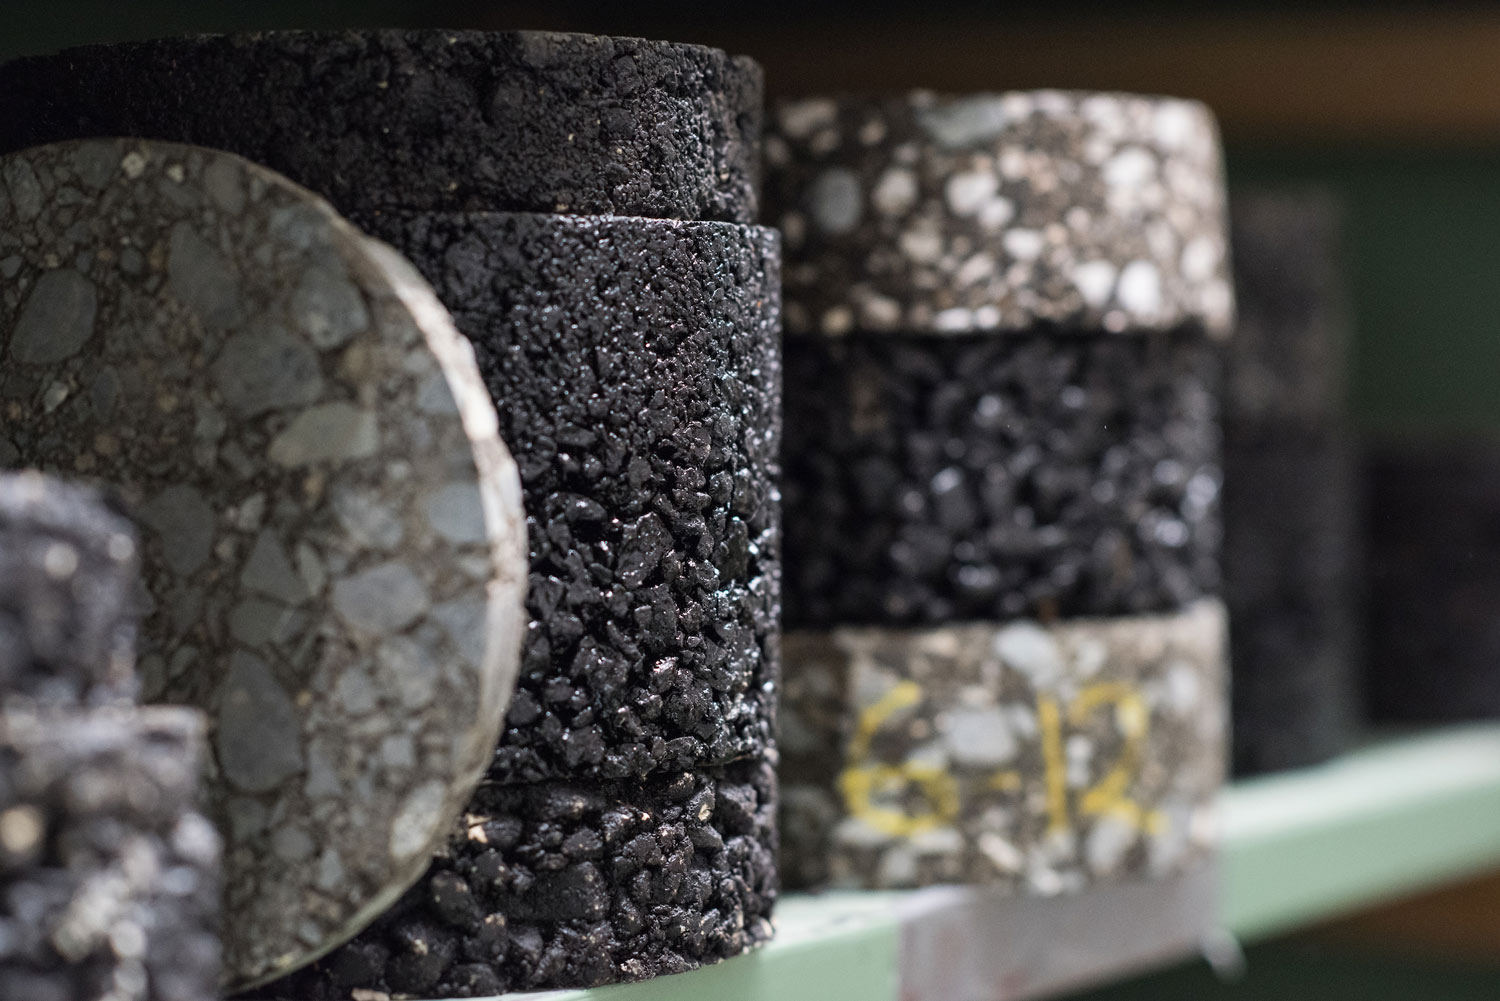 Cylinders of asphalt on a shelf